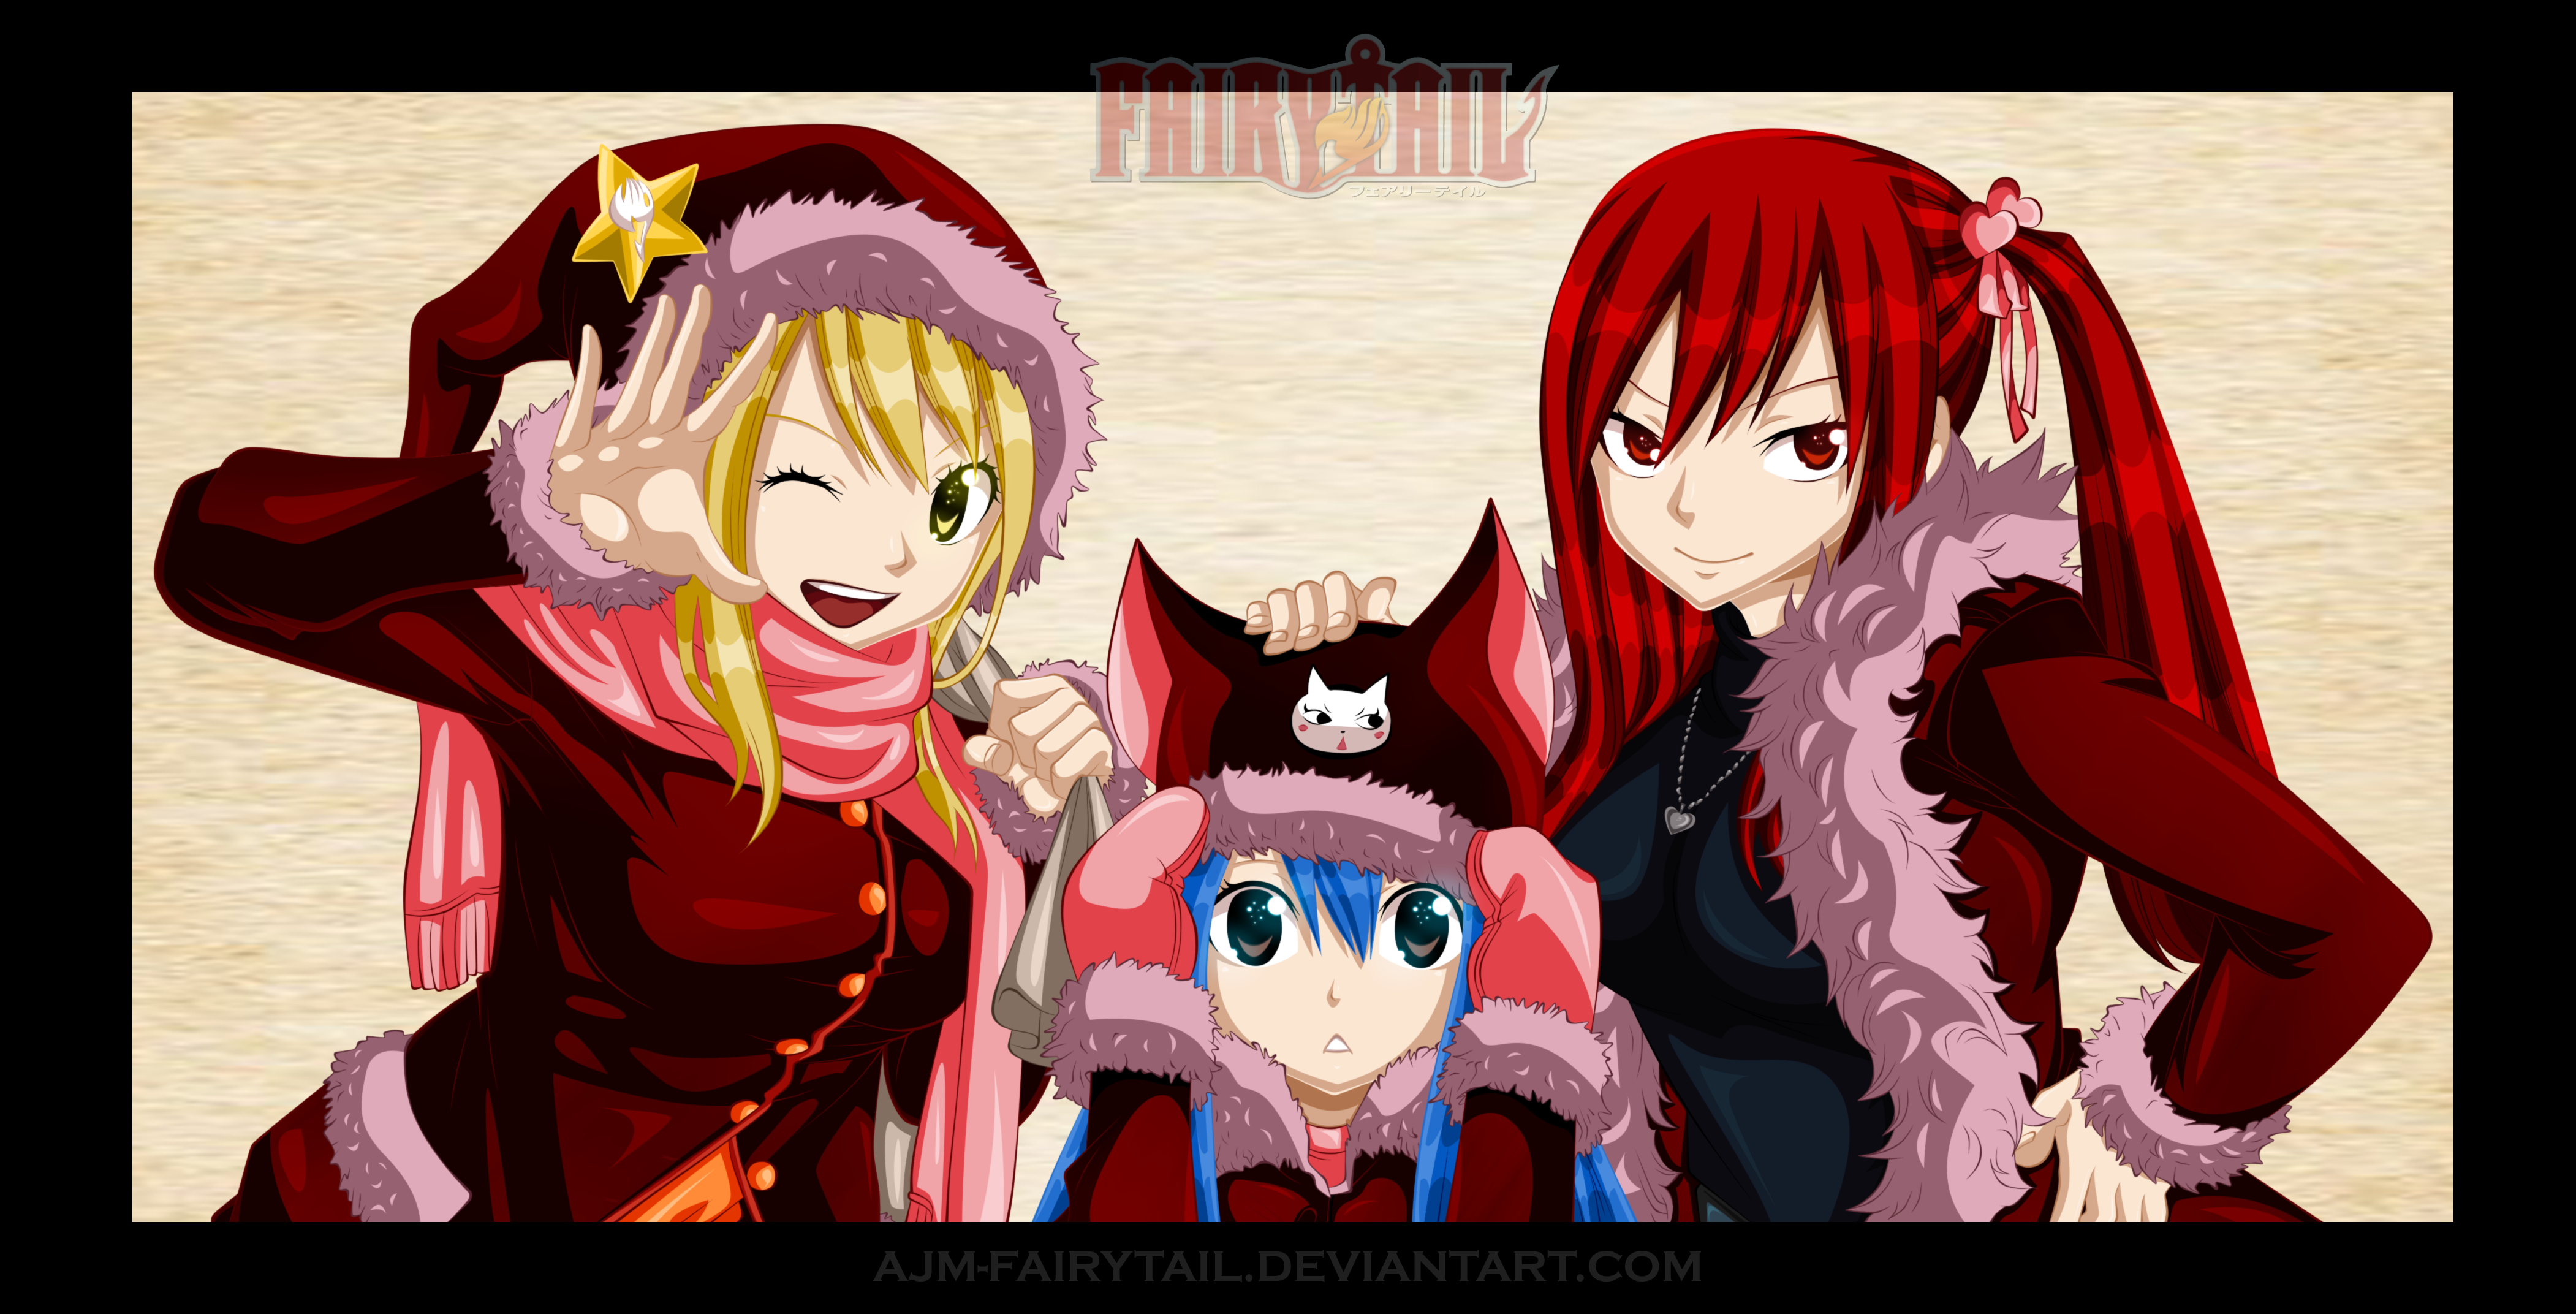 Twas The Night Before Christmas by AJM-FairyTail on DeviantArt